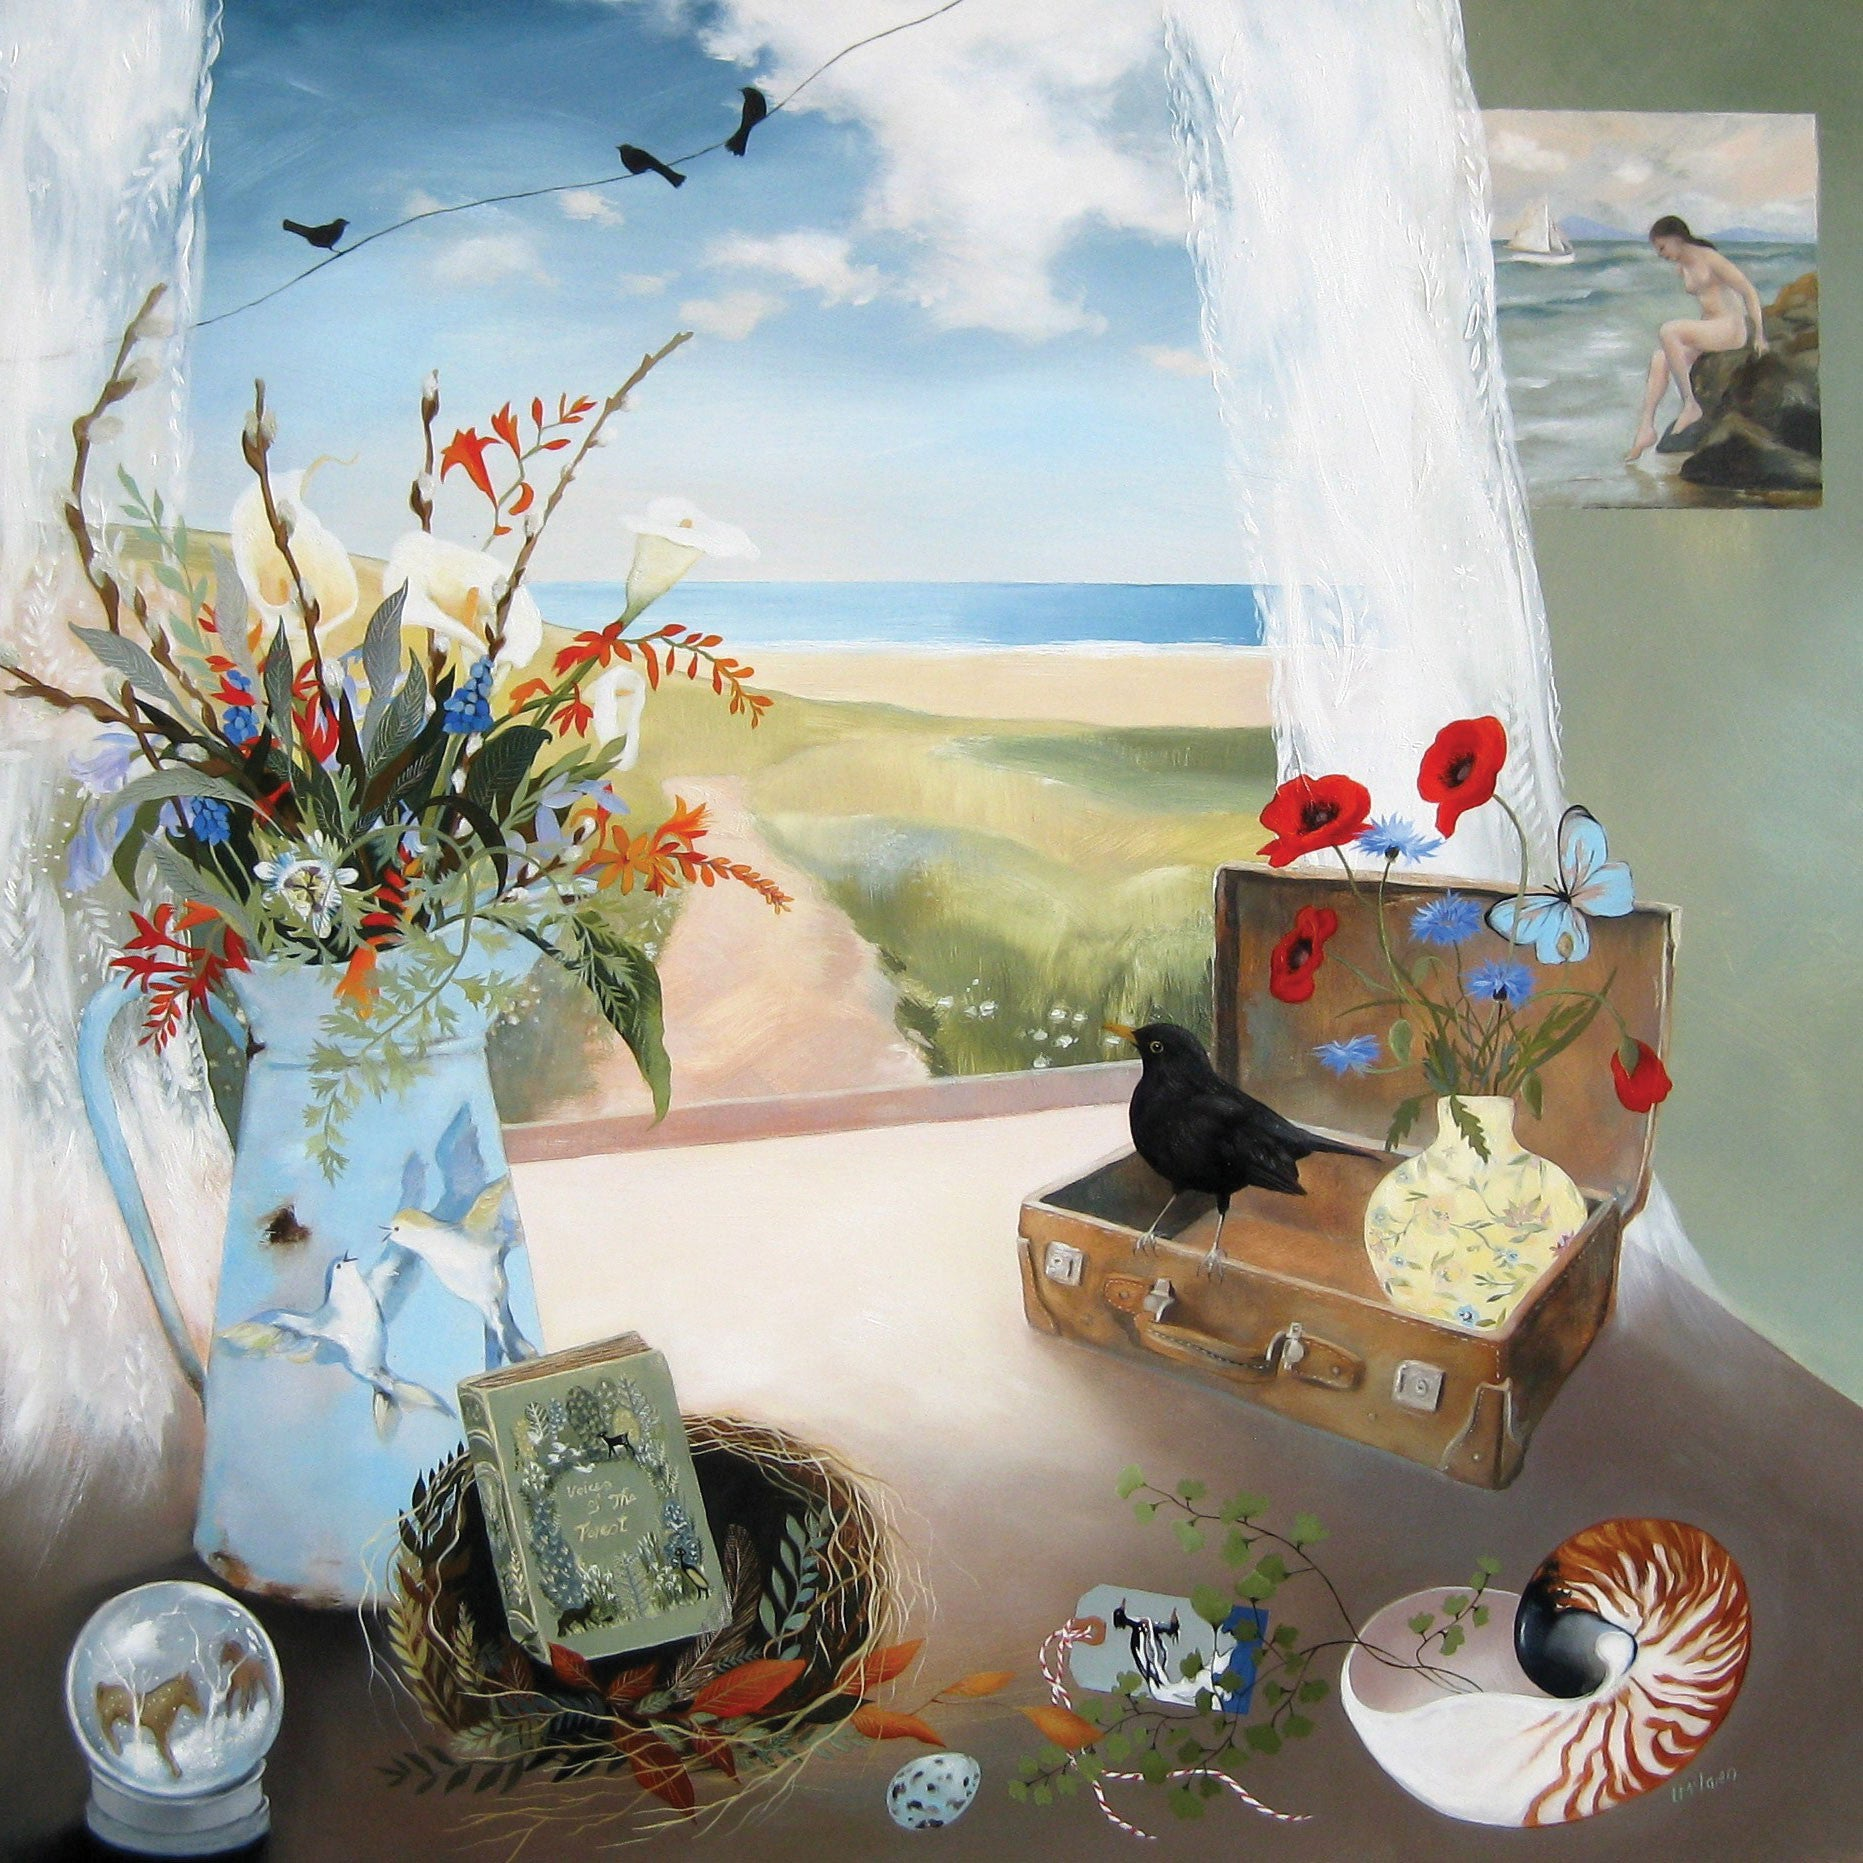 First Day of Summer by Lesley McLaren, Fine Art Greeting Card, Oil on Gesso Panel, Window scene with flower vases, birds, nests, shells